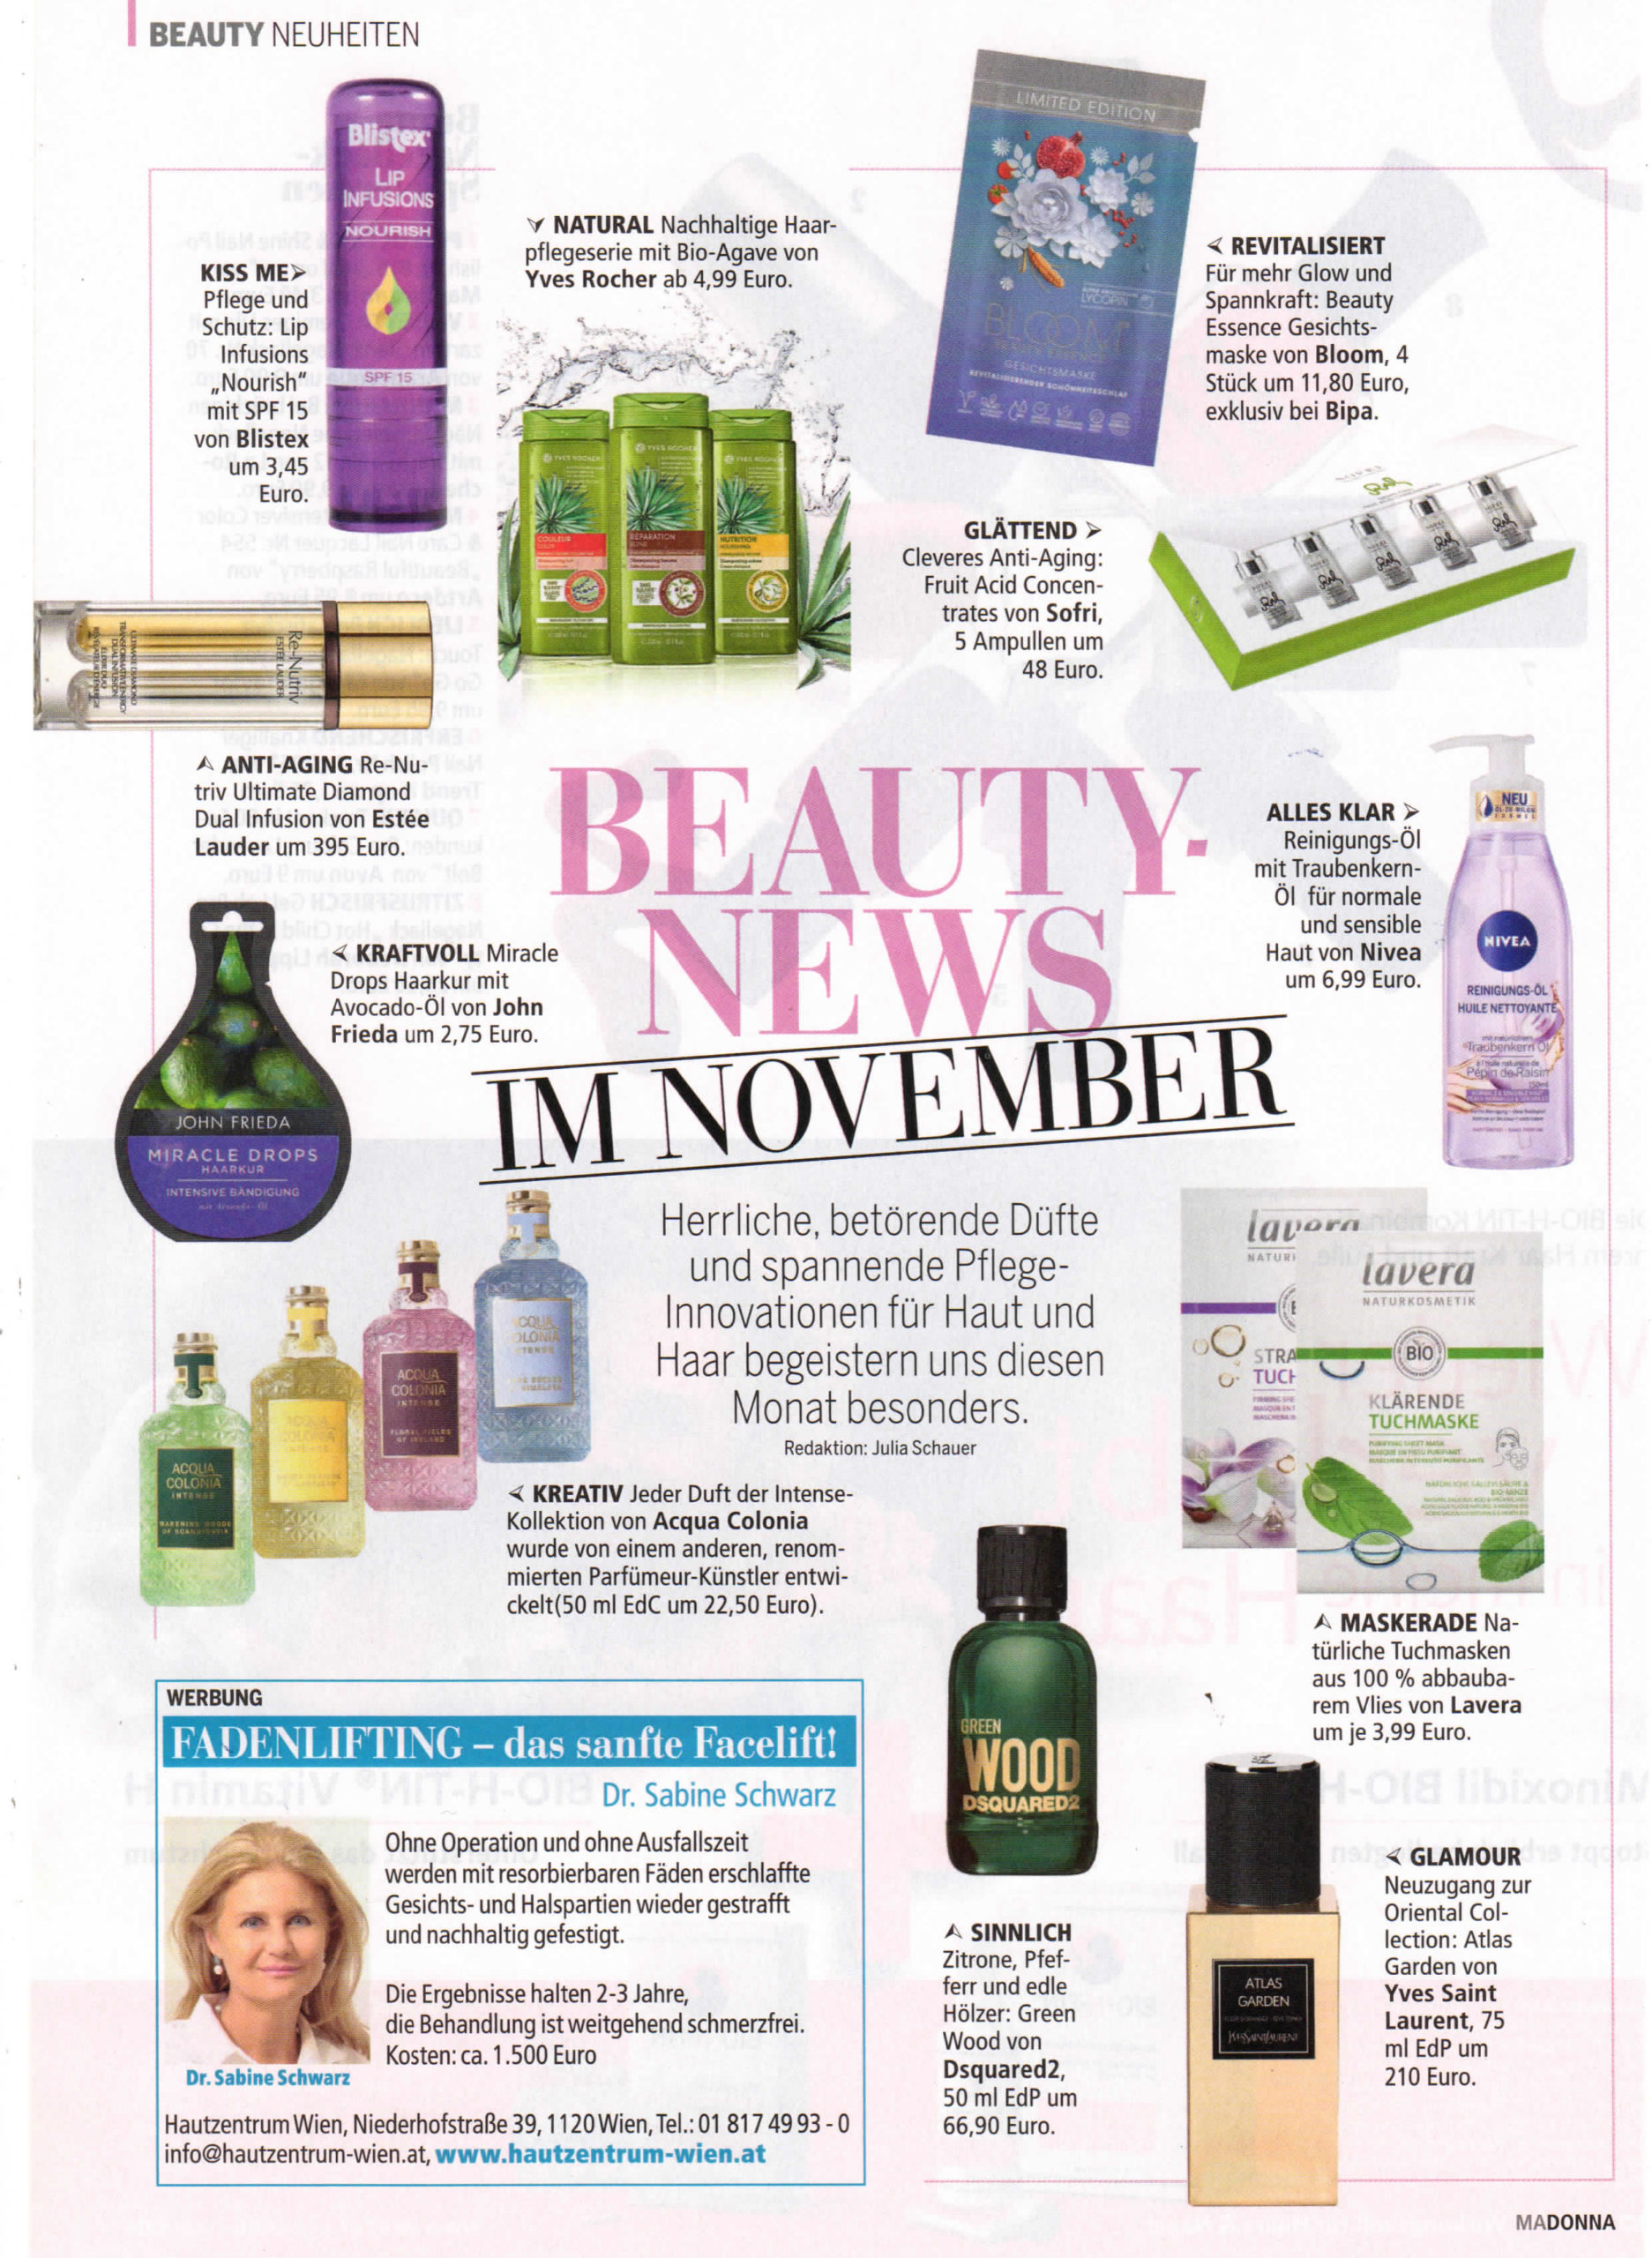 Beauty News im November, Madonna im November 2019